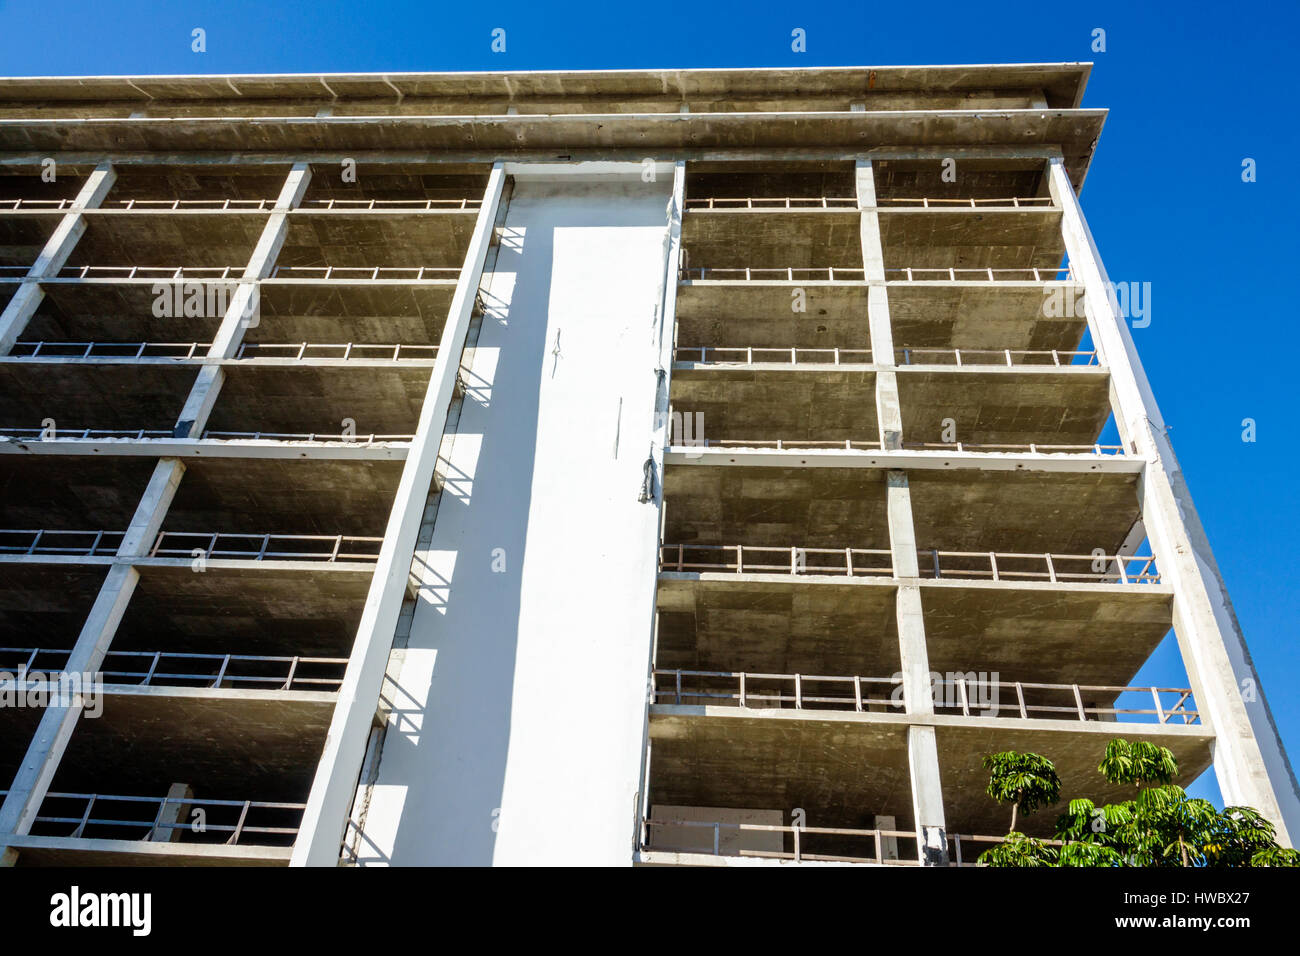 Miami Beach Florida West Avenue building gutted high-rise structure former South Shore Hospital redevelopment - Stock Image